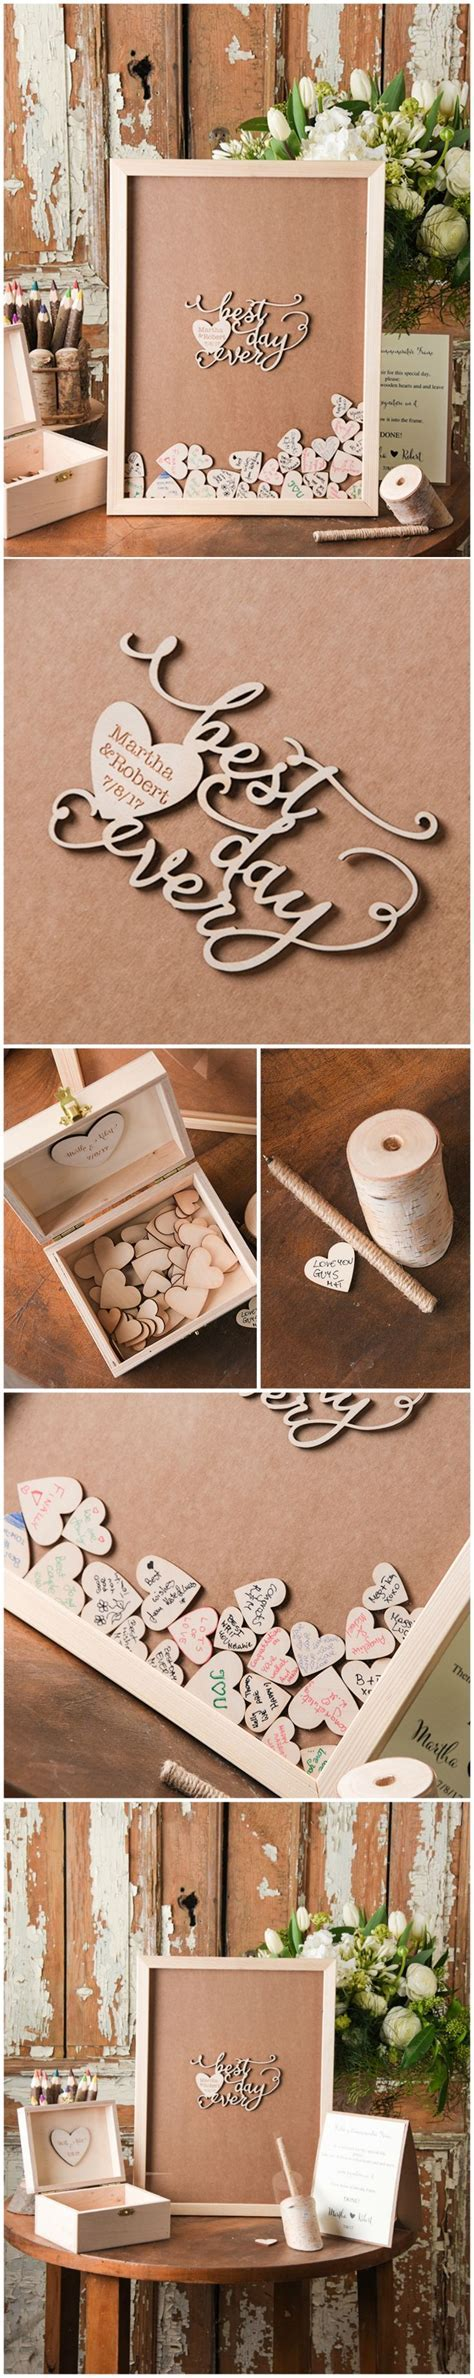 1000  ideas about Rustic Guest Books on Pinterest